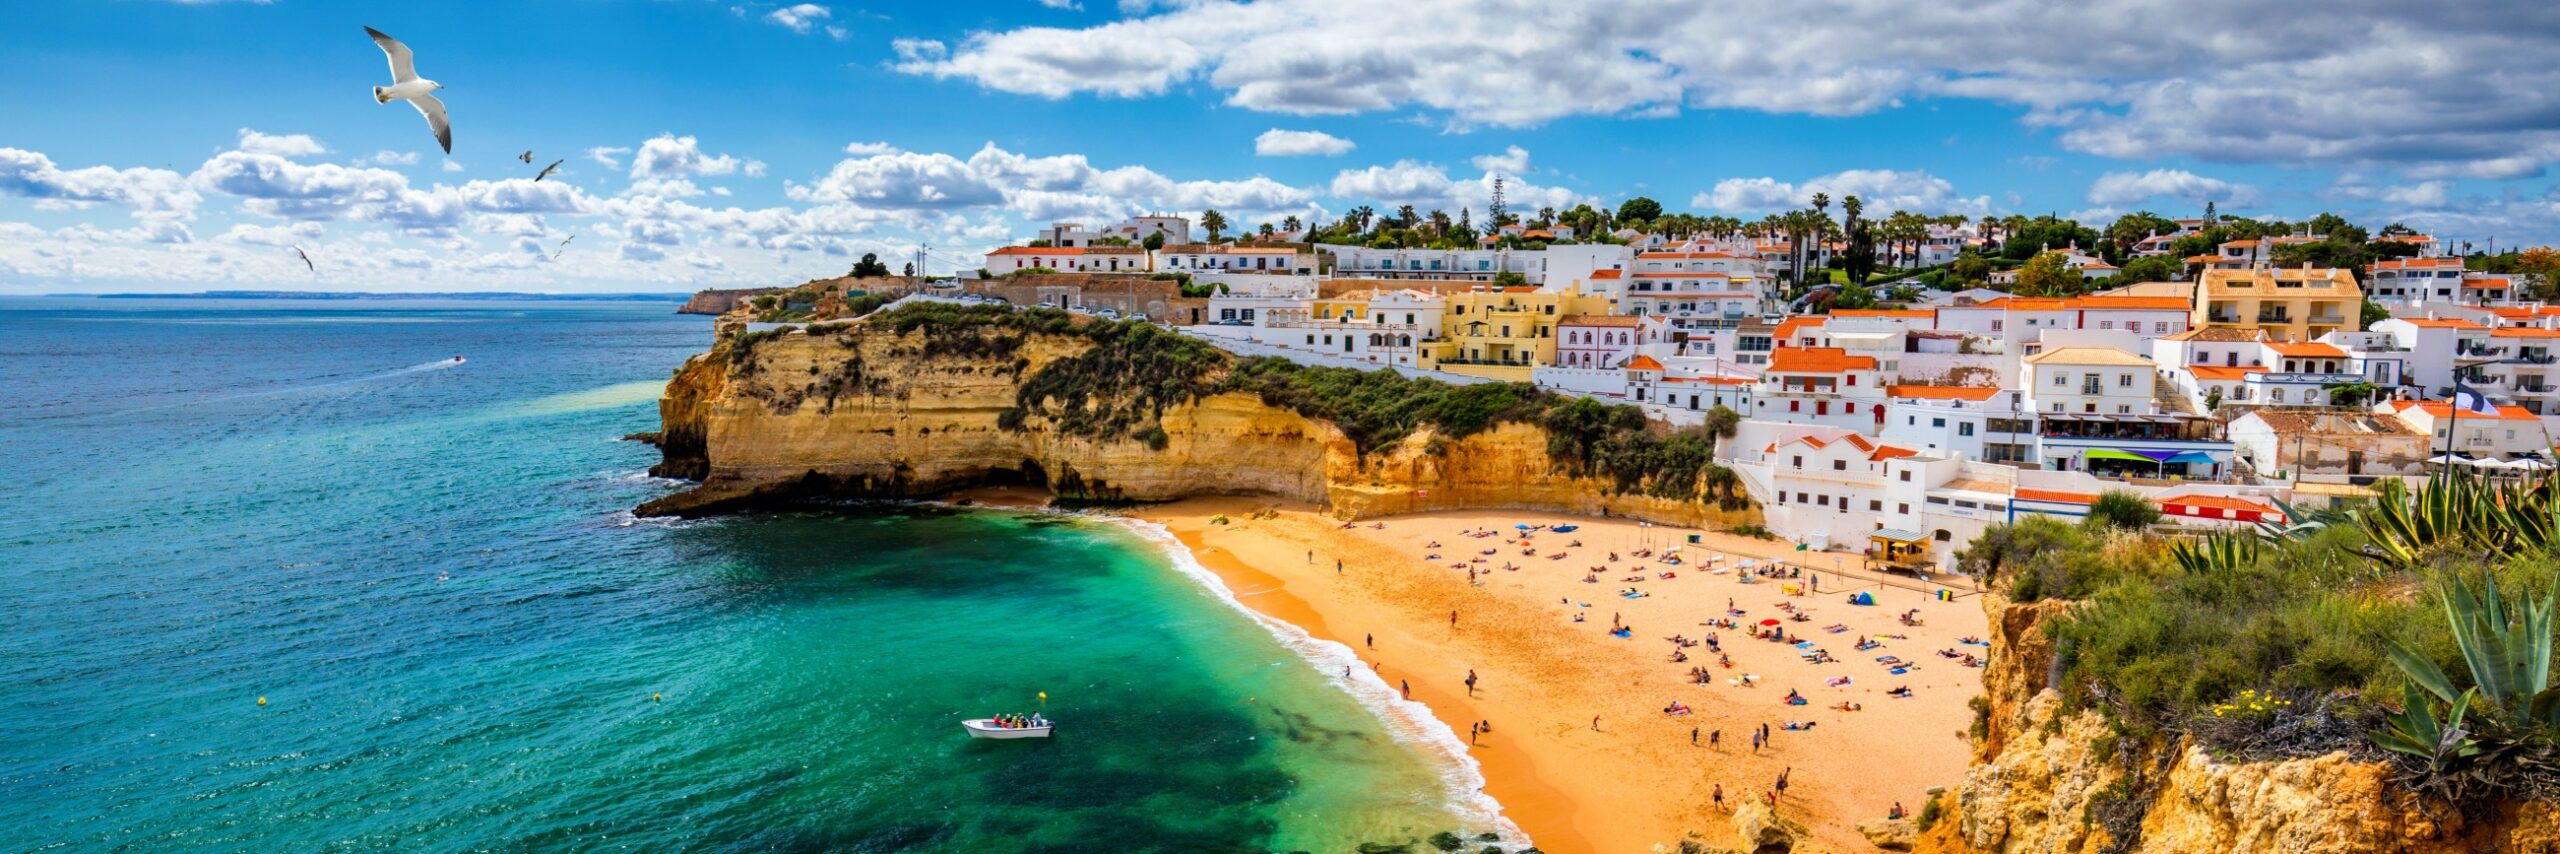 The Algarve: Best Things to Do in the Sunny South of Portugal